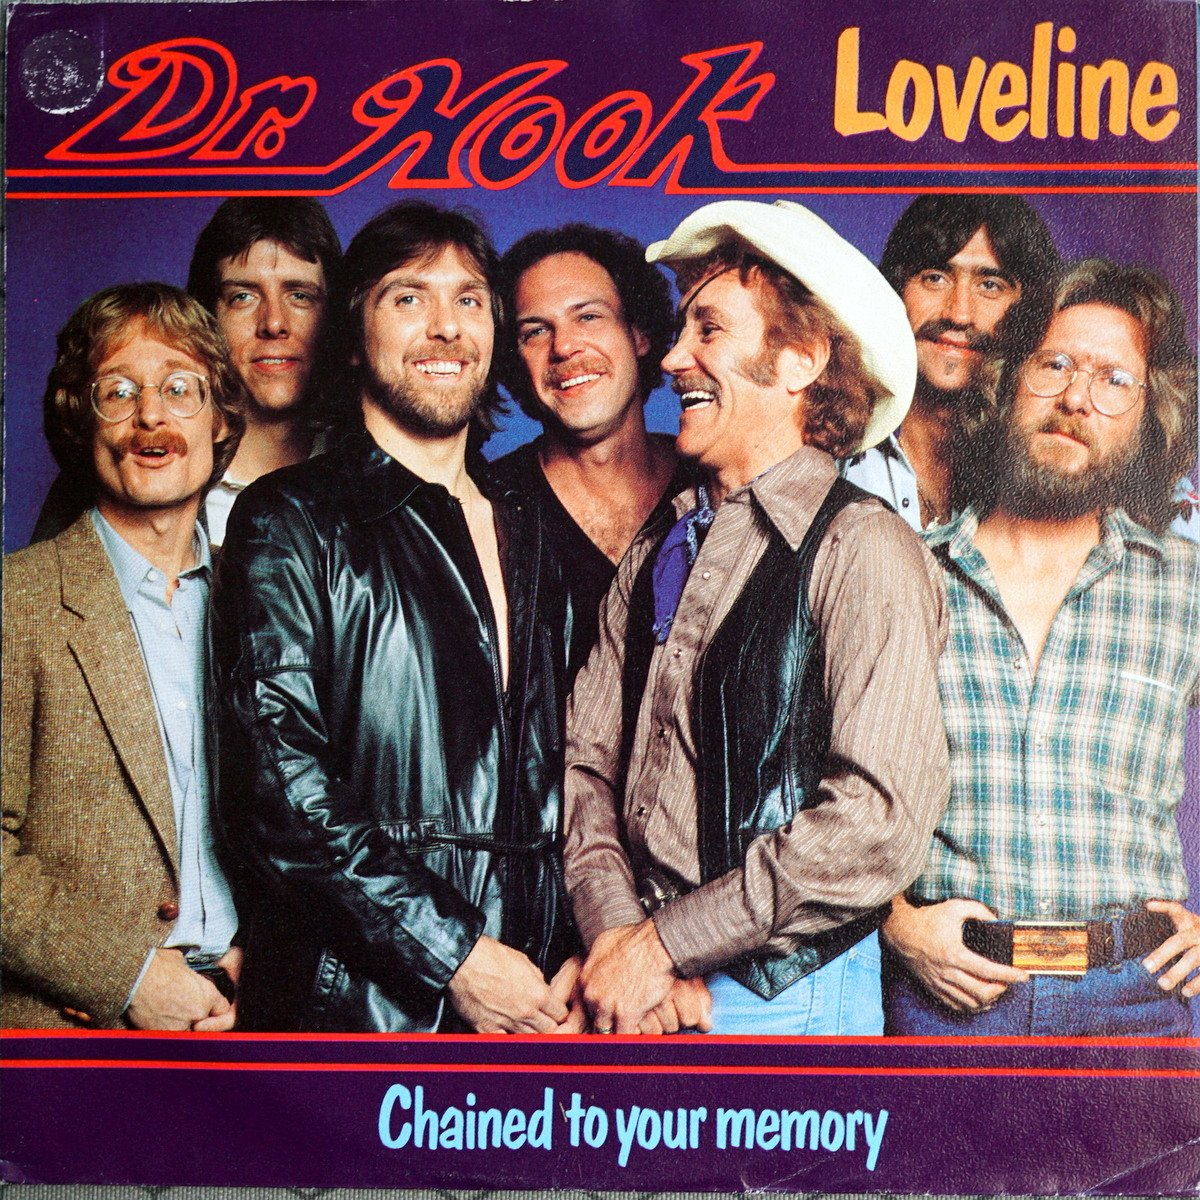 S PD A5 - 6000 830 - Loveline - 1982 - NL